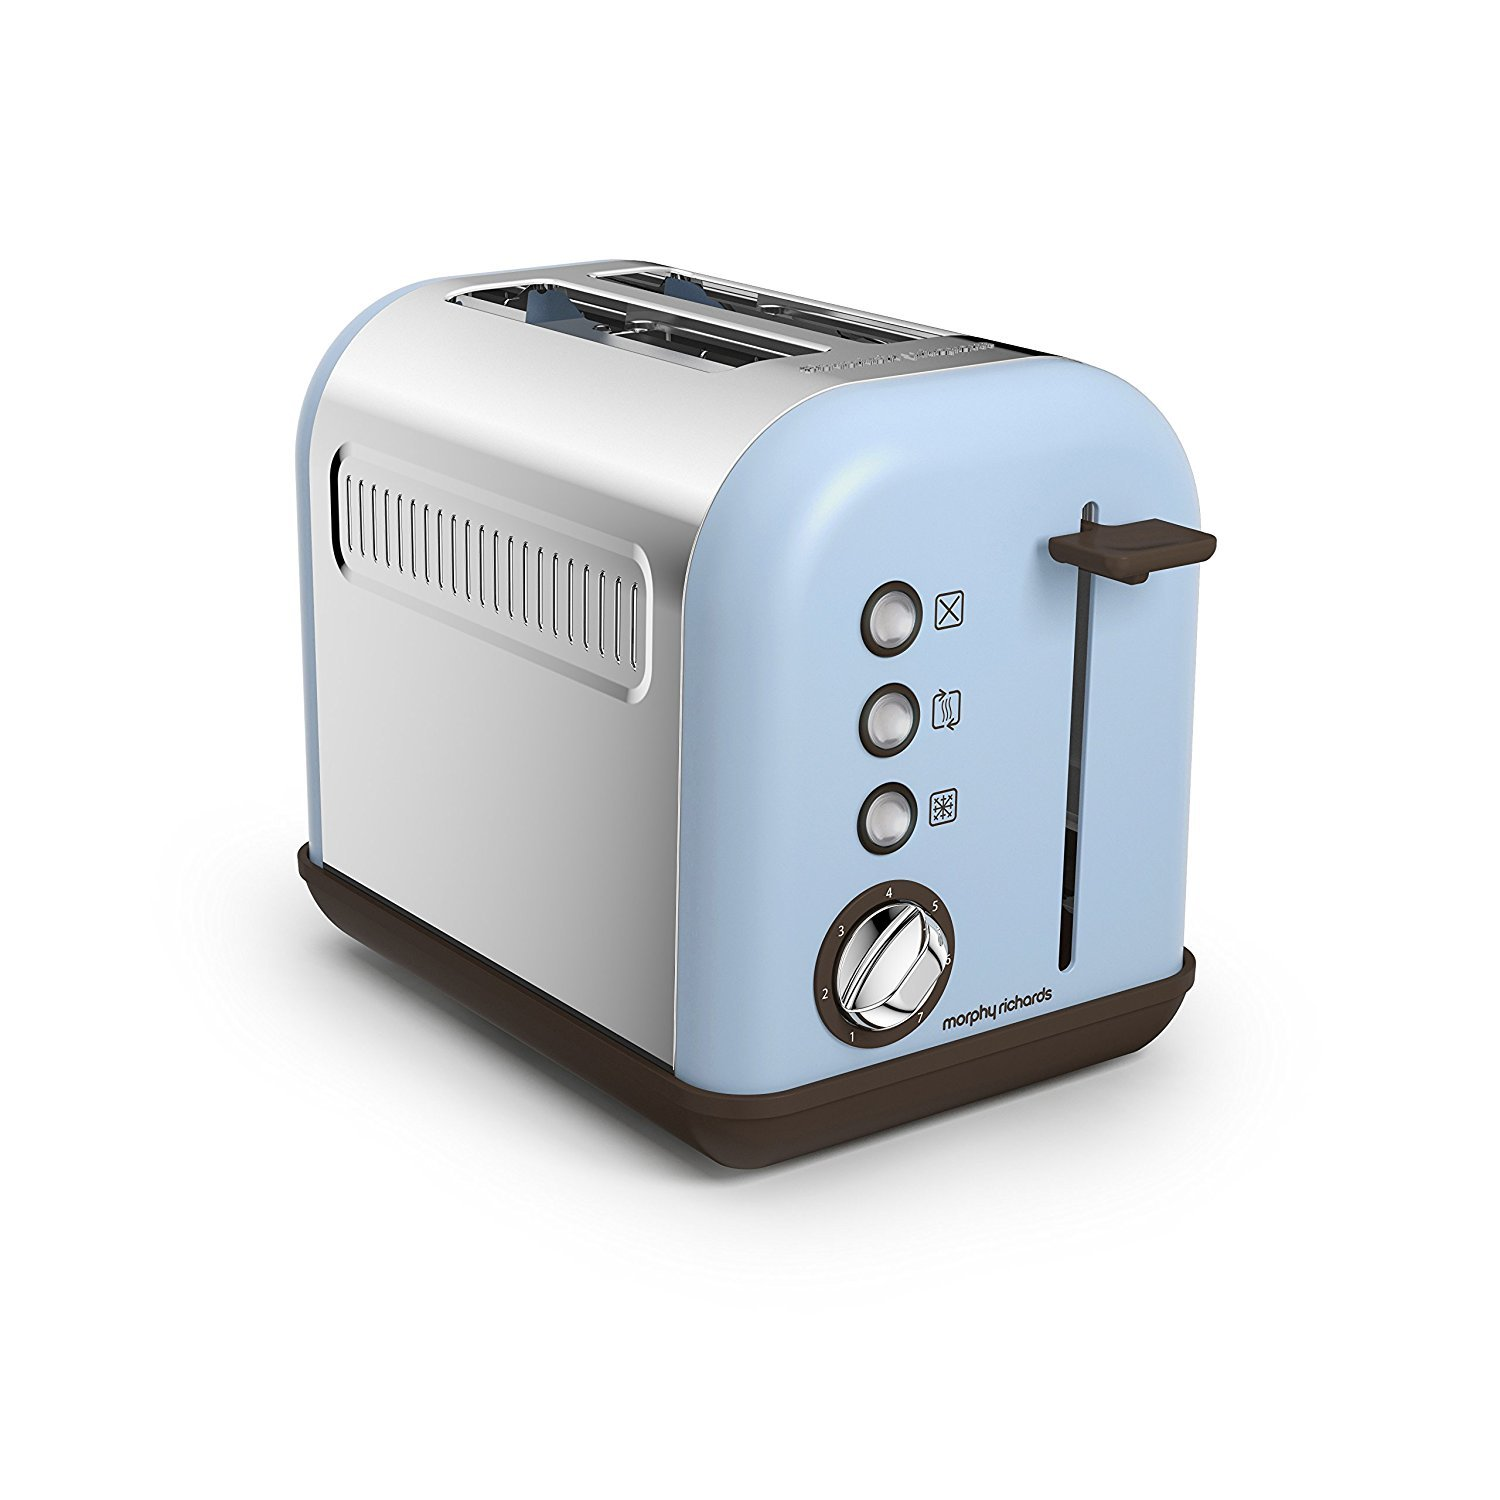 kitchenware news breakfast nostalgia abound w electrics housewares for options toaster kalorik